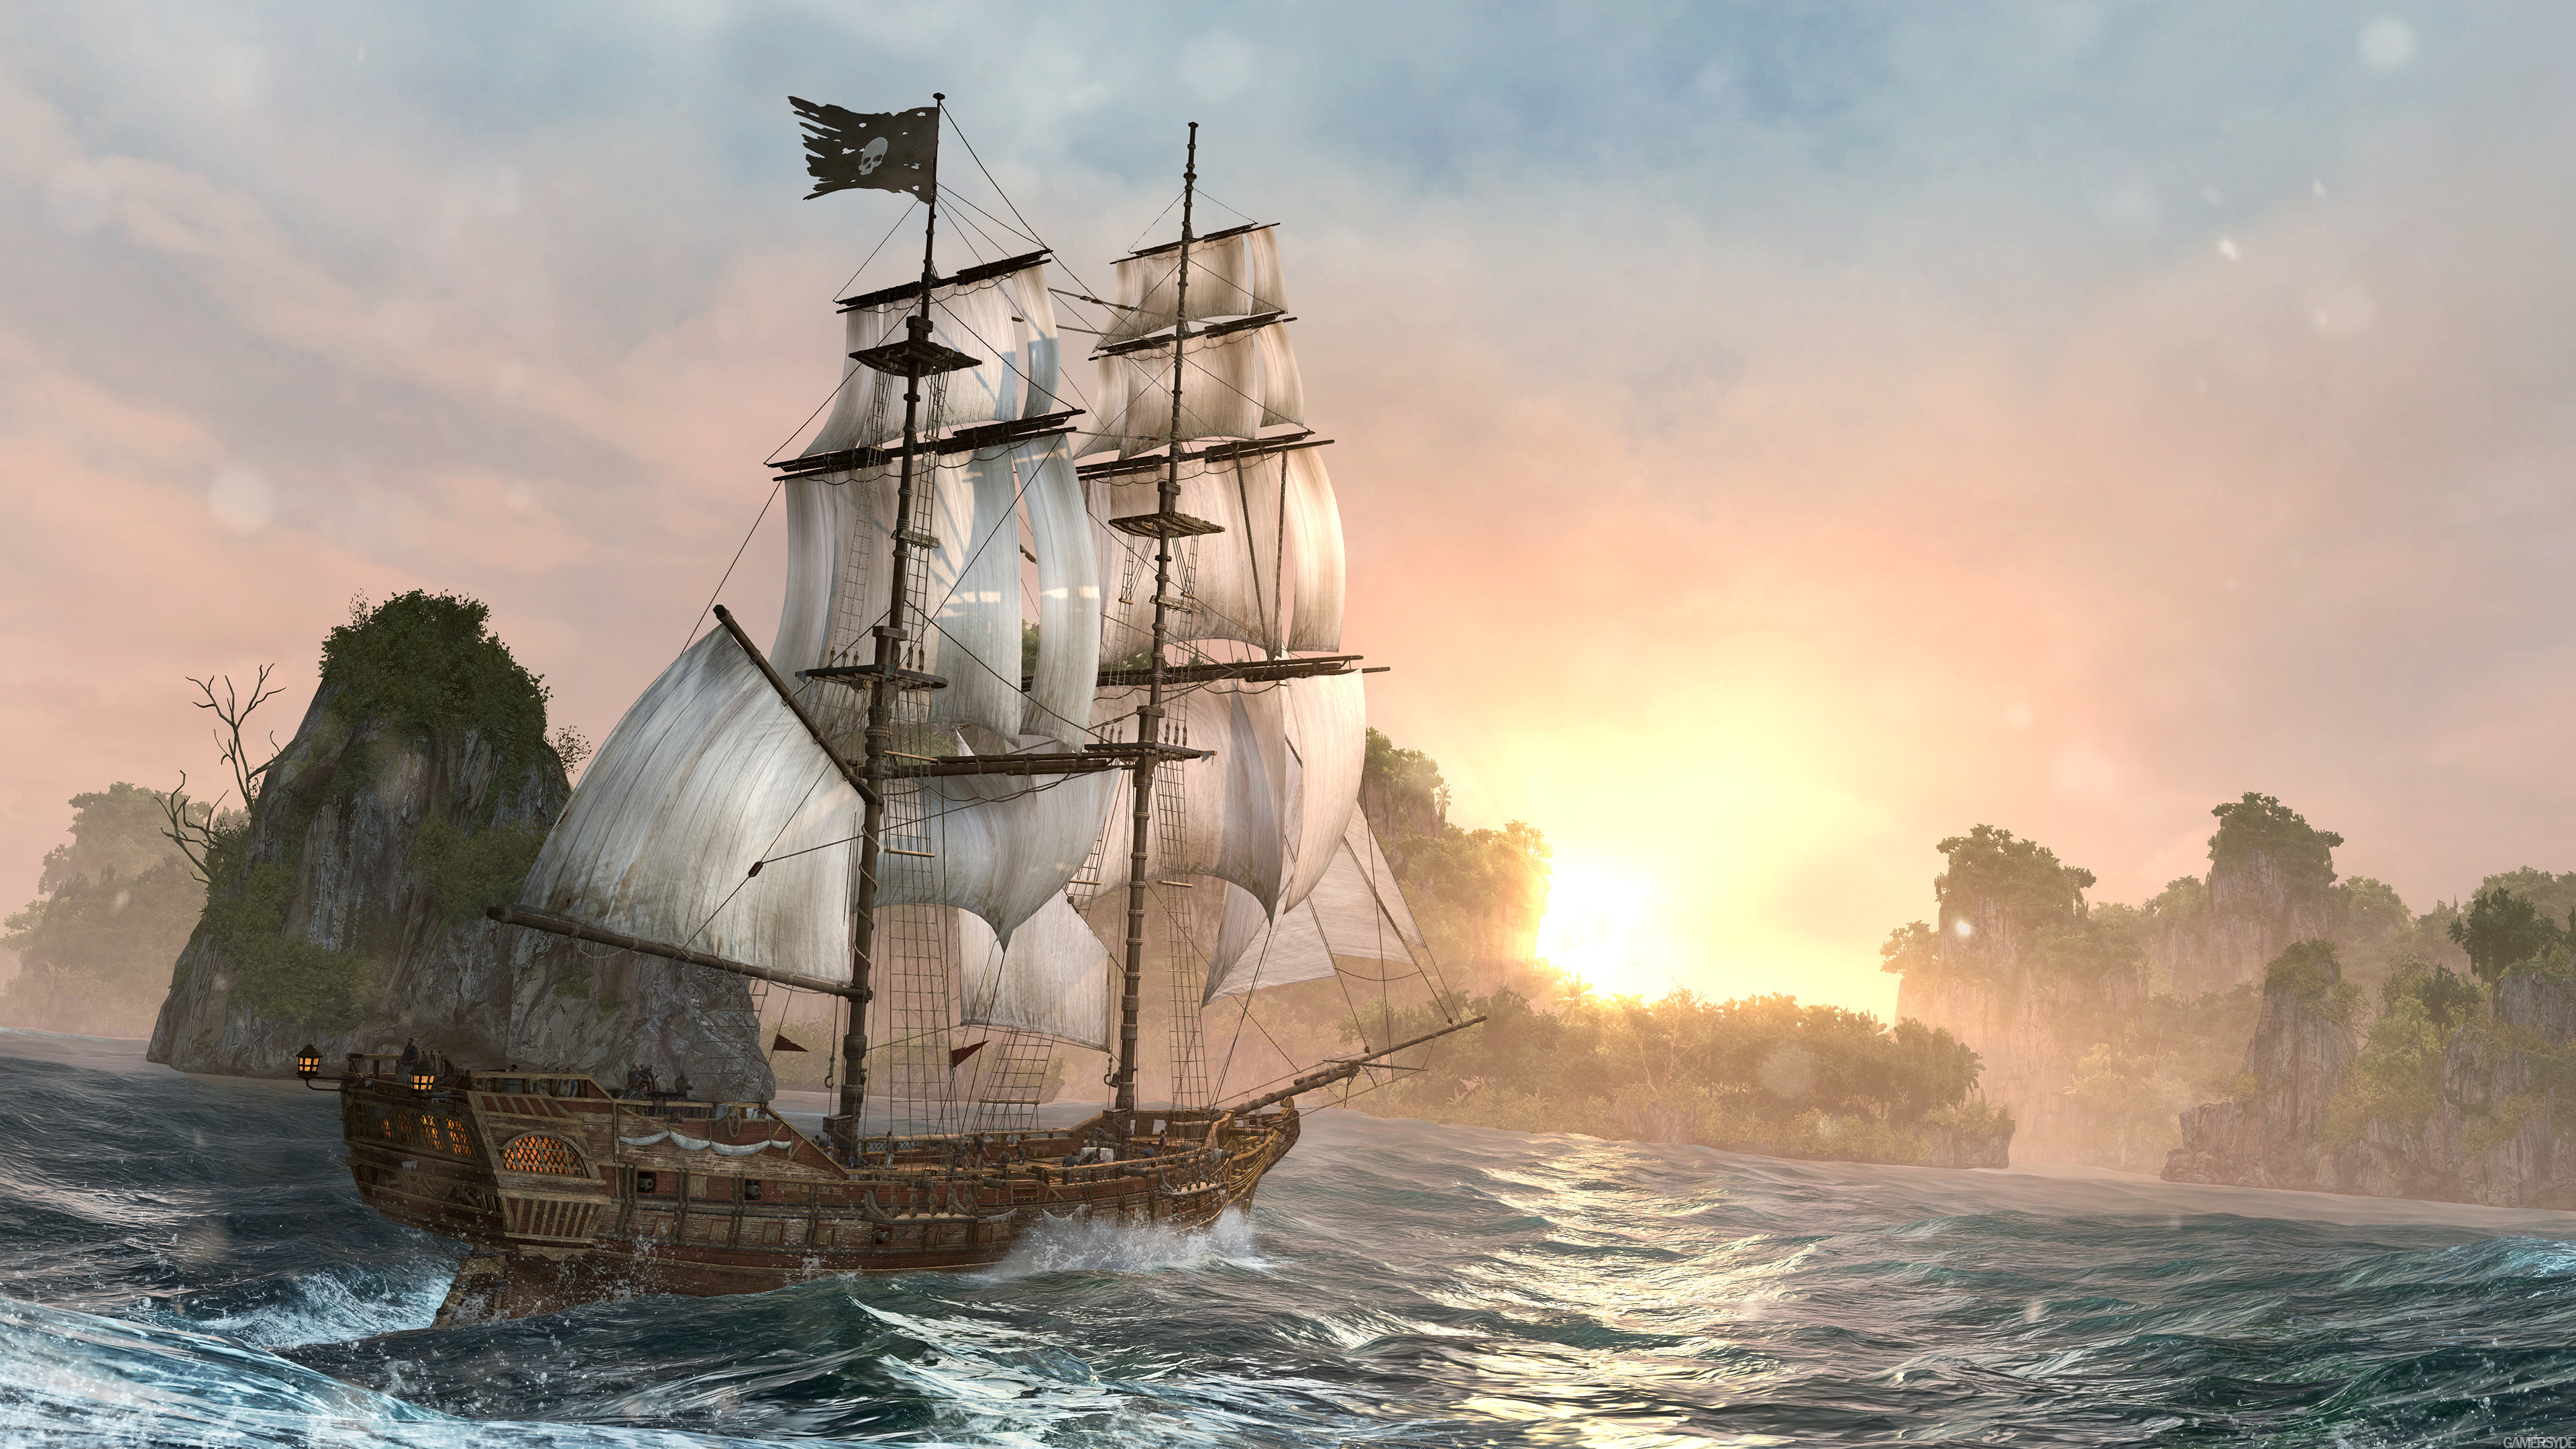 126 Assassins Creed IV Black Flag HD Wallpapers Background 3840x2160